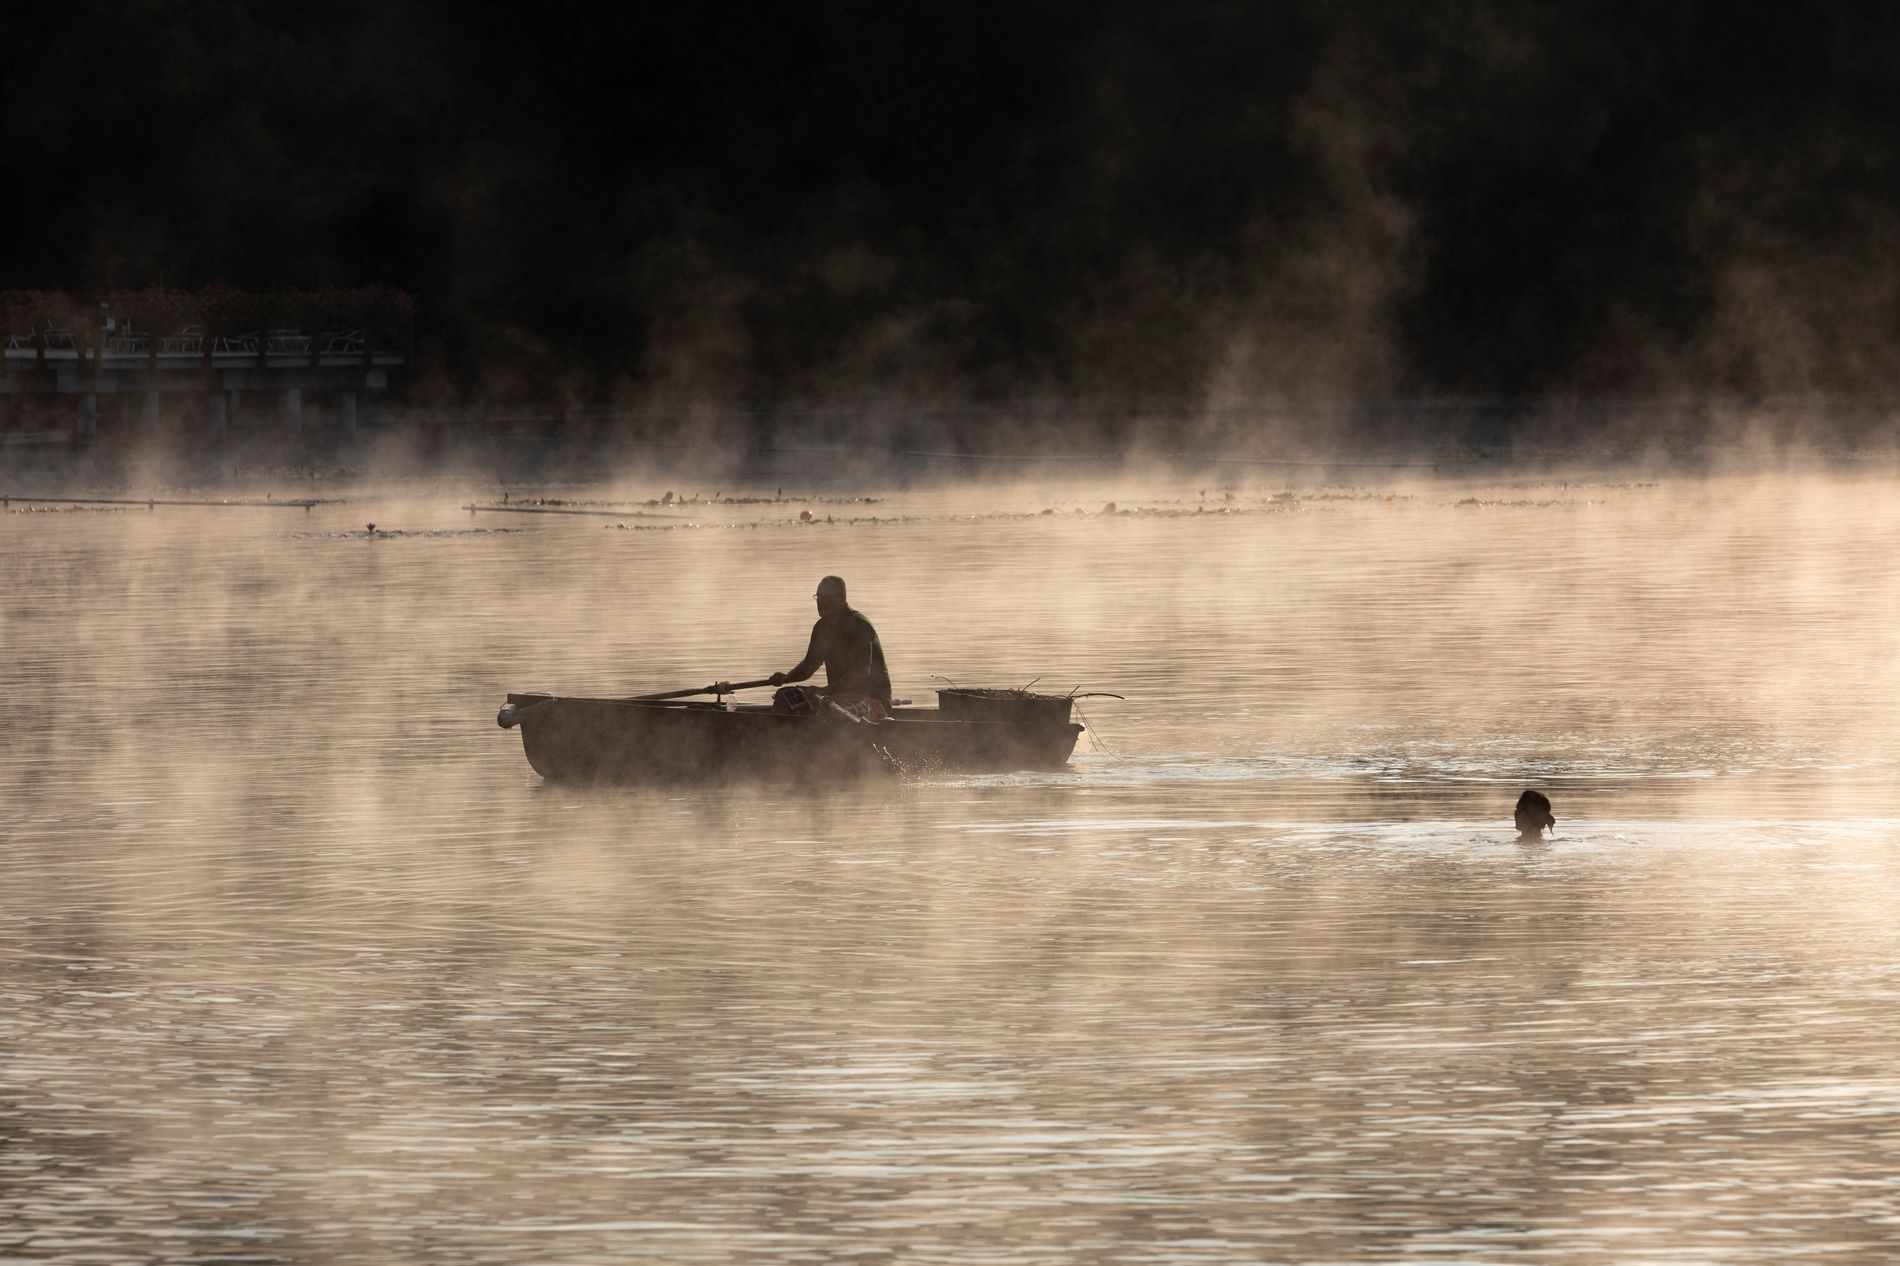 A morning swimmer meets a boater on thermal Lake Hévíz, a biologically active lake composed of ...